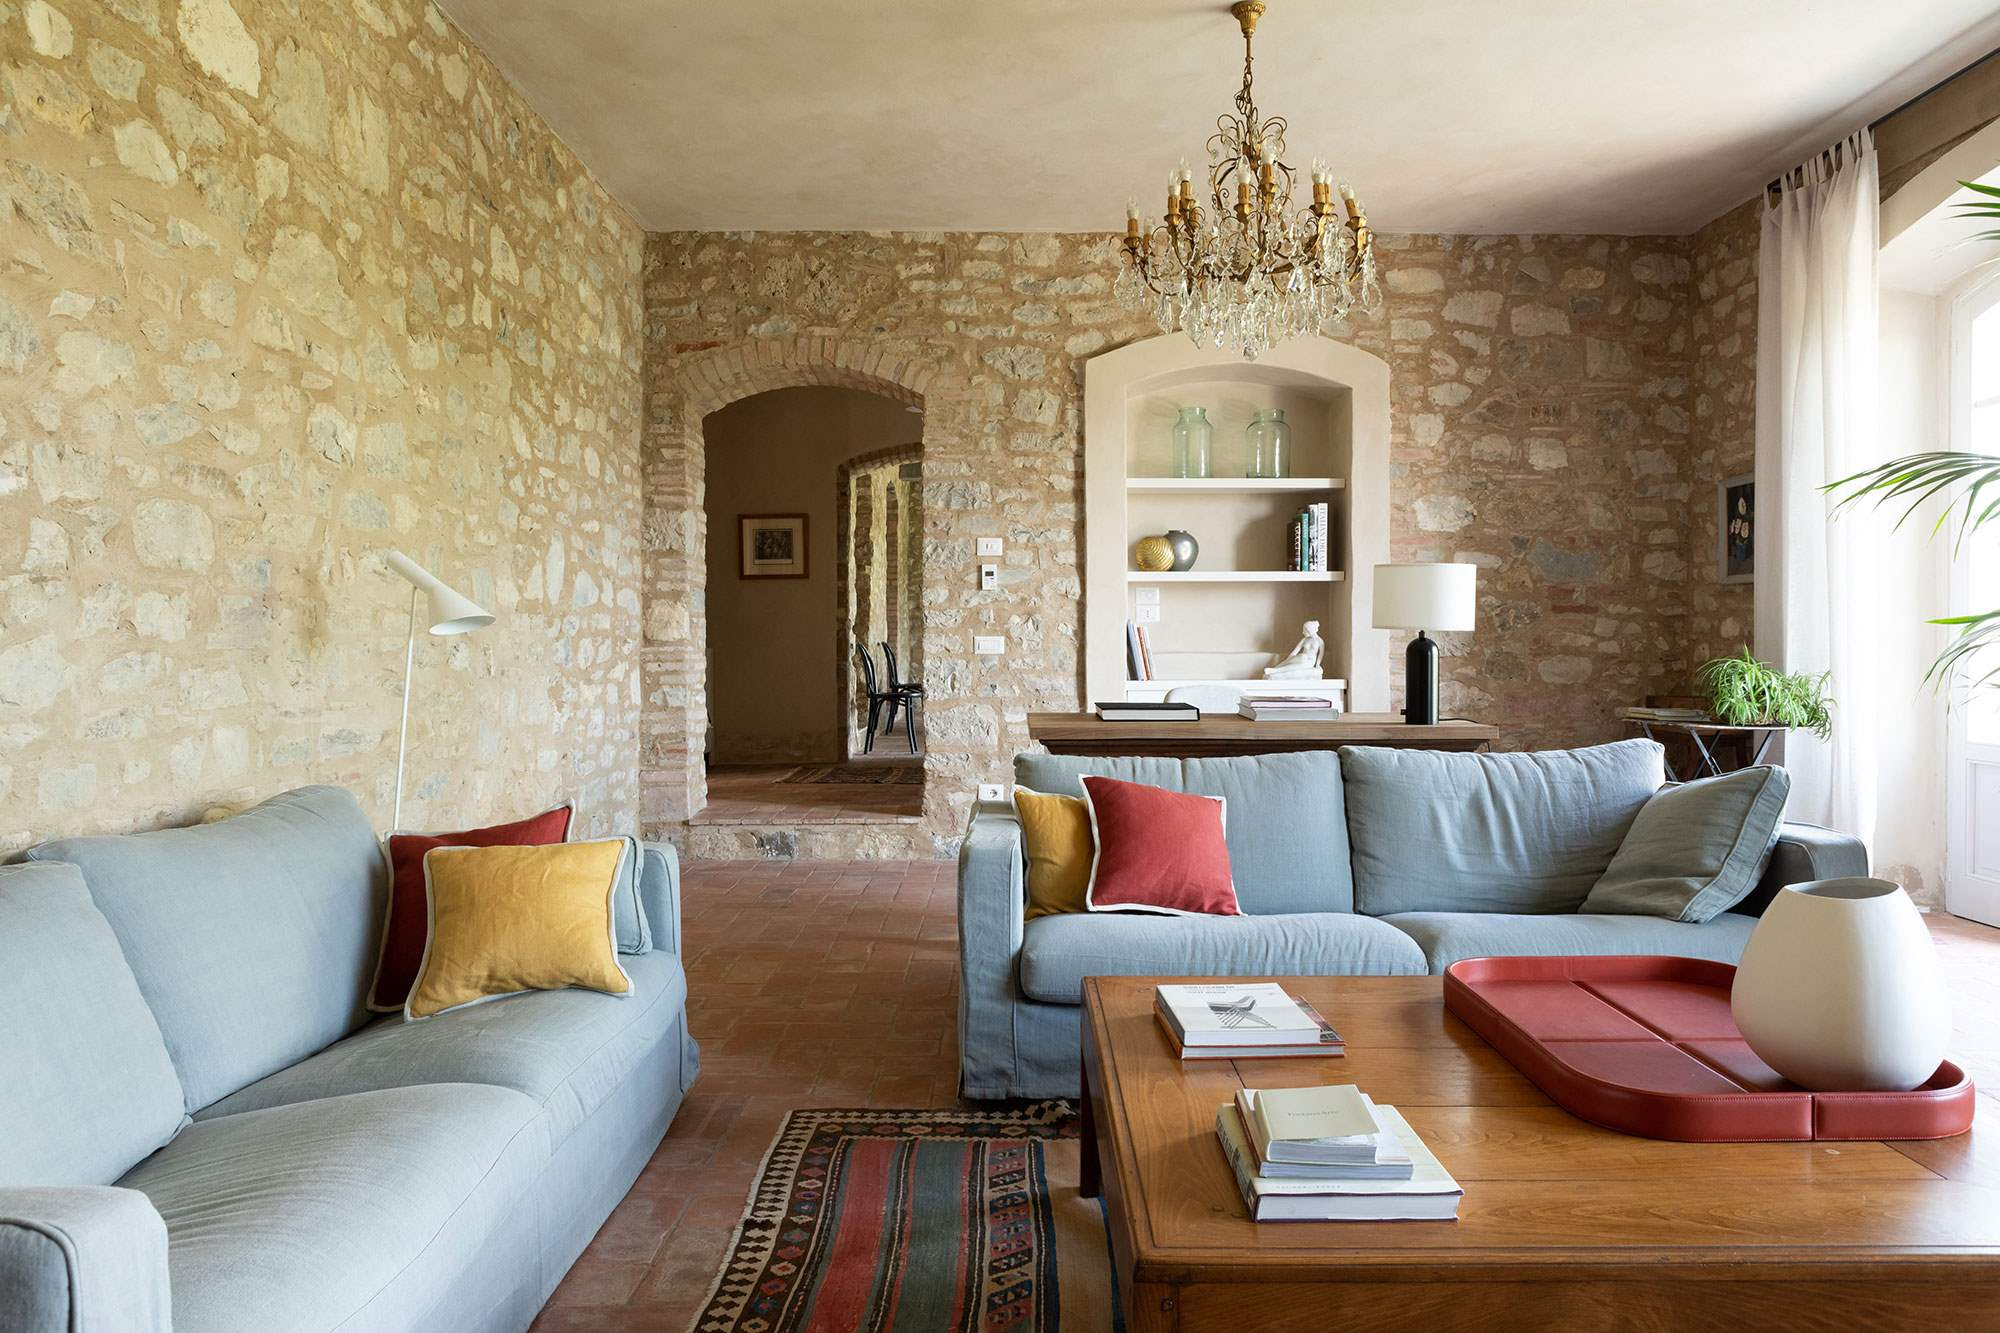 Villa Lecchi, 5 bedroom villa in Chianti & Countryside, Tuscany Photo #5